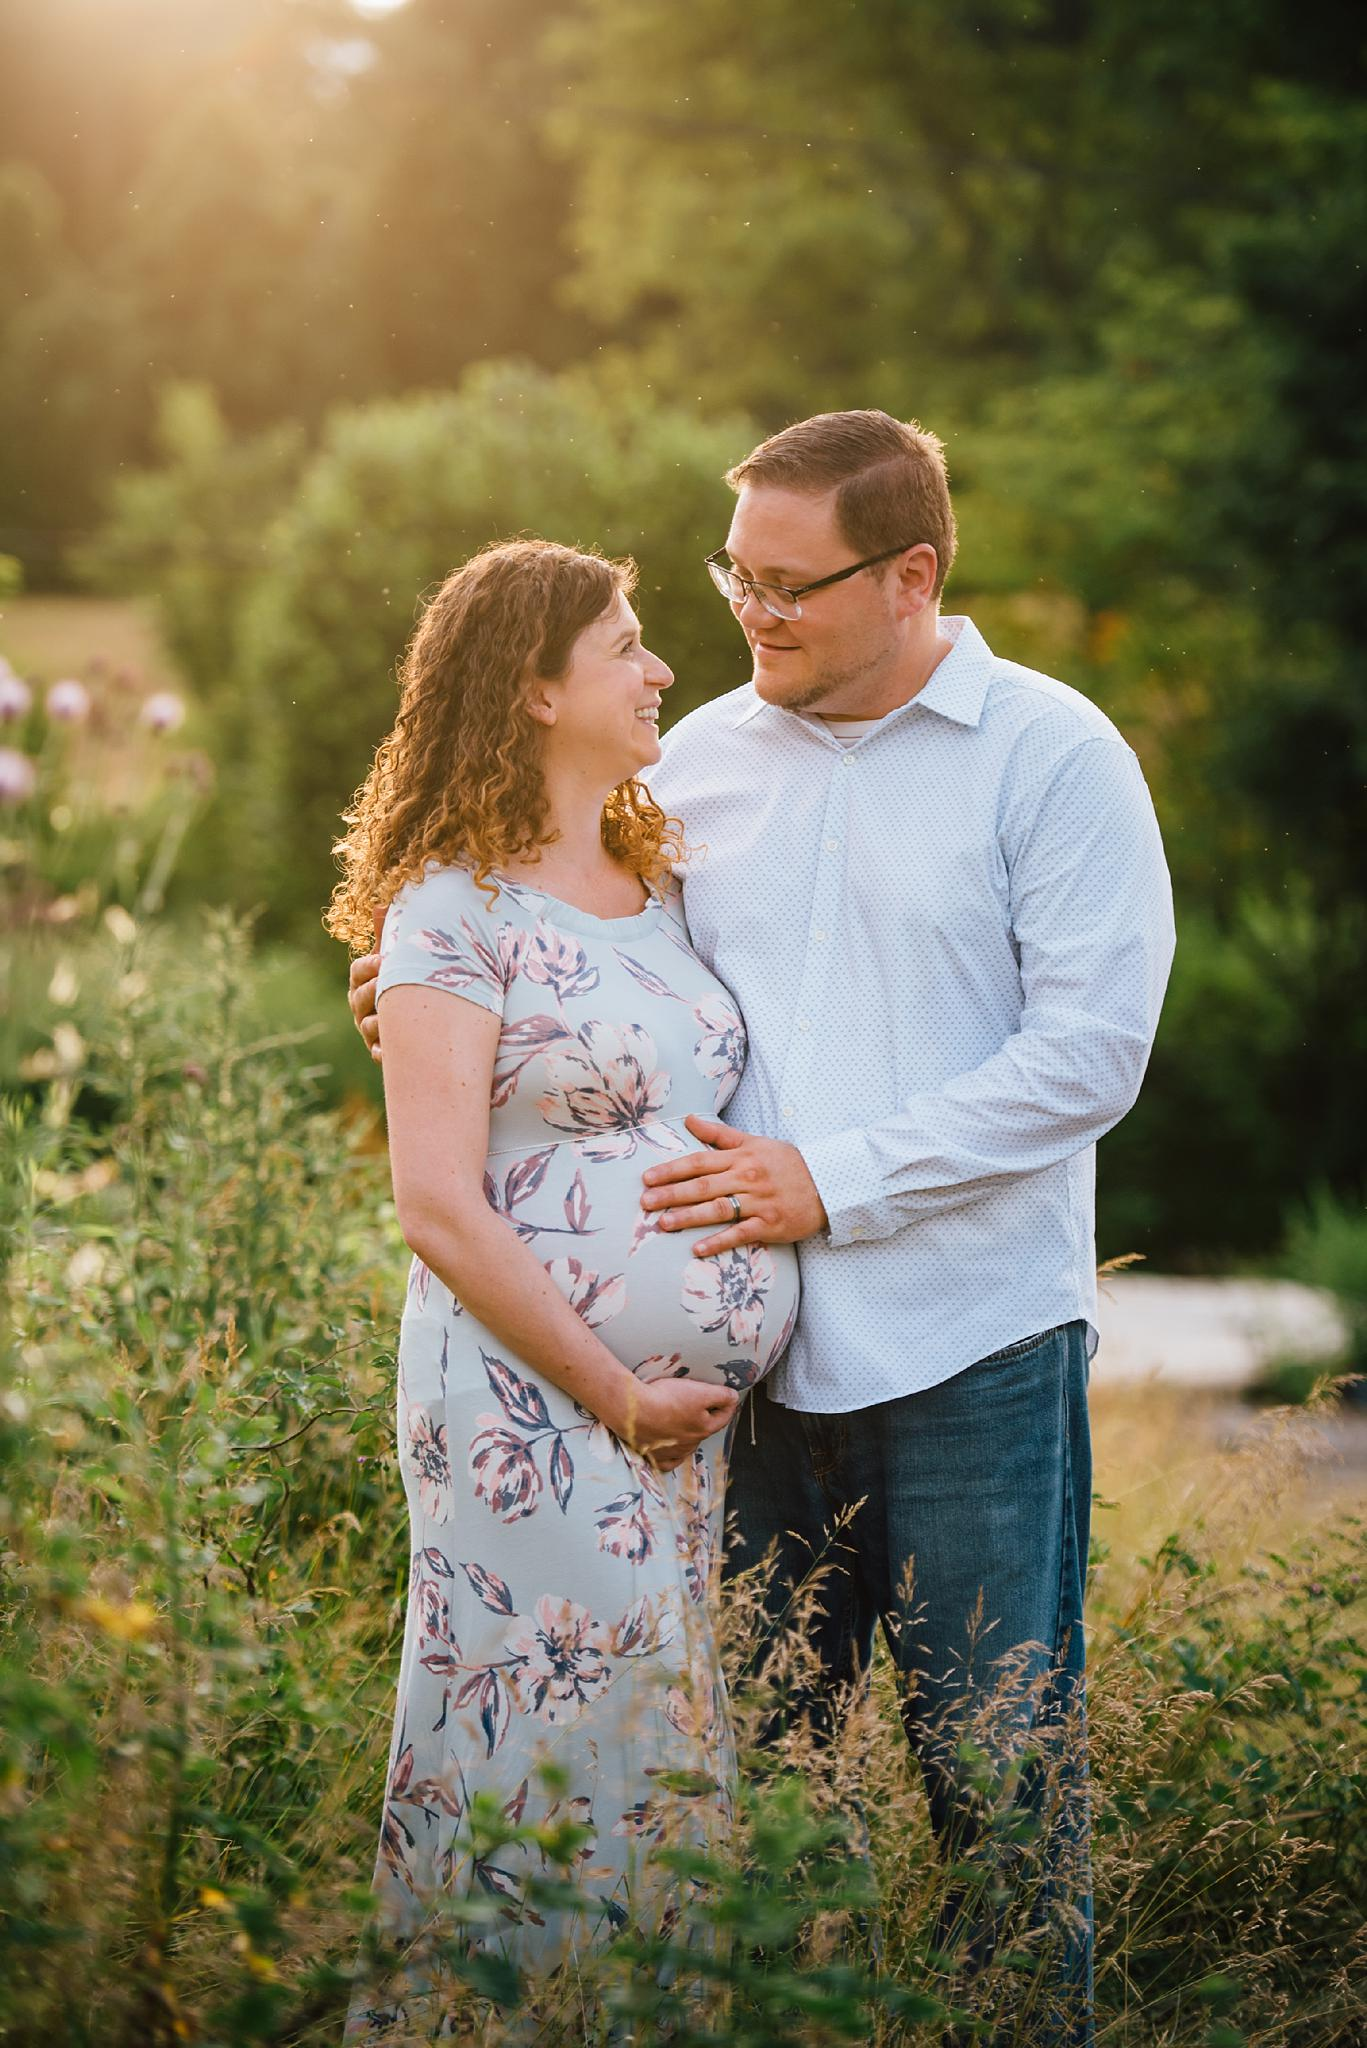 Pittsburgh Rachel Rossetti Maternity Photography Lifestyle Family_0076.jpg